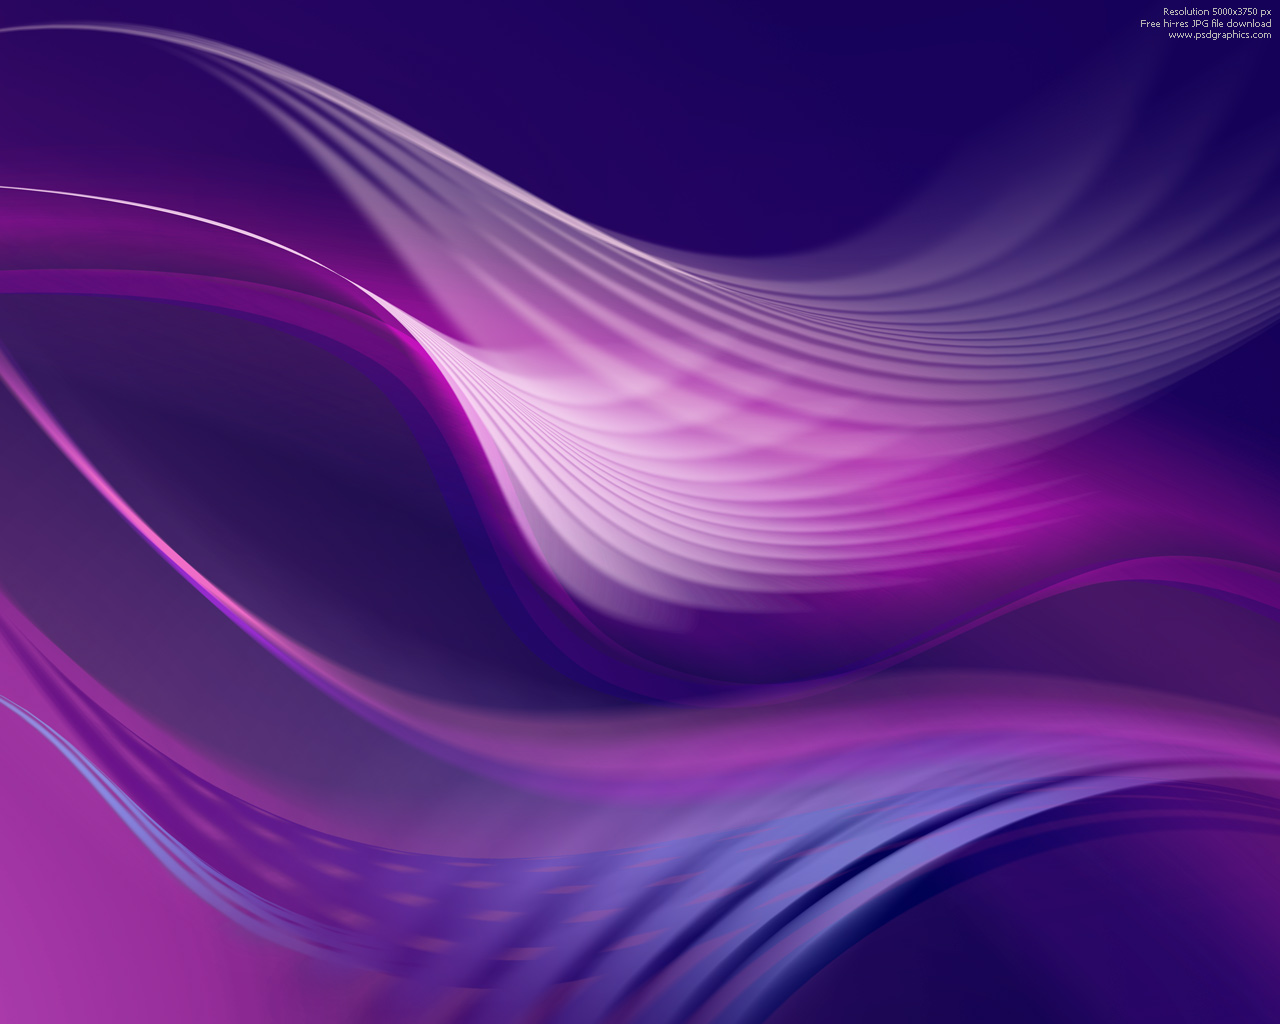 Wallpaper Maza Purple Wallpaper